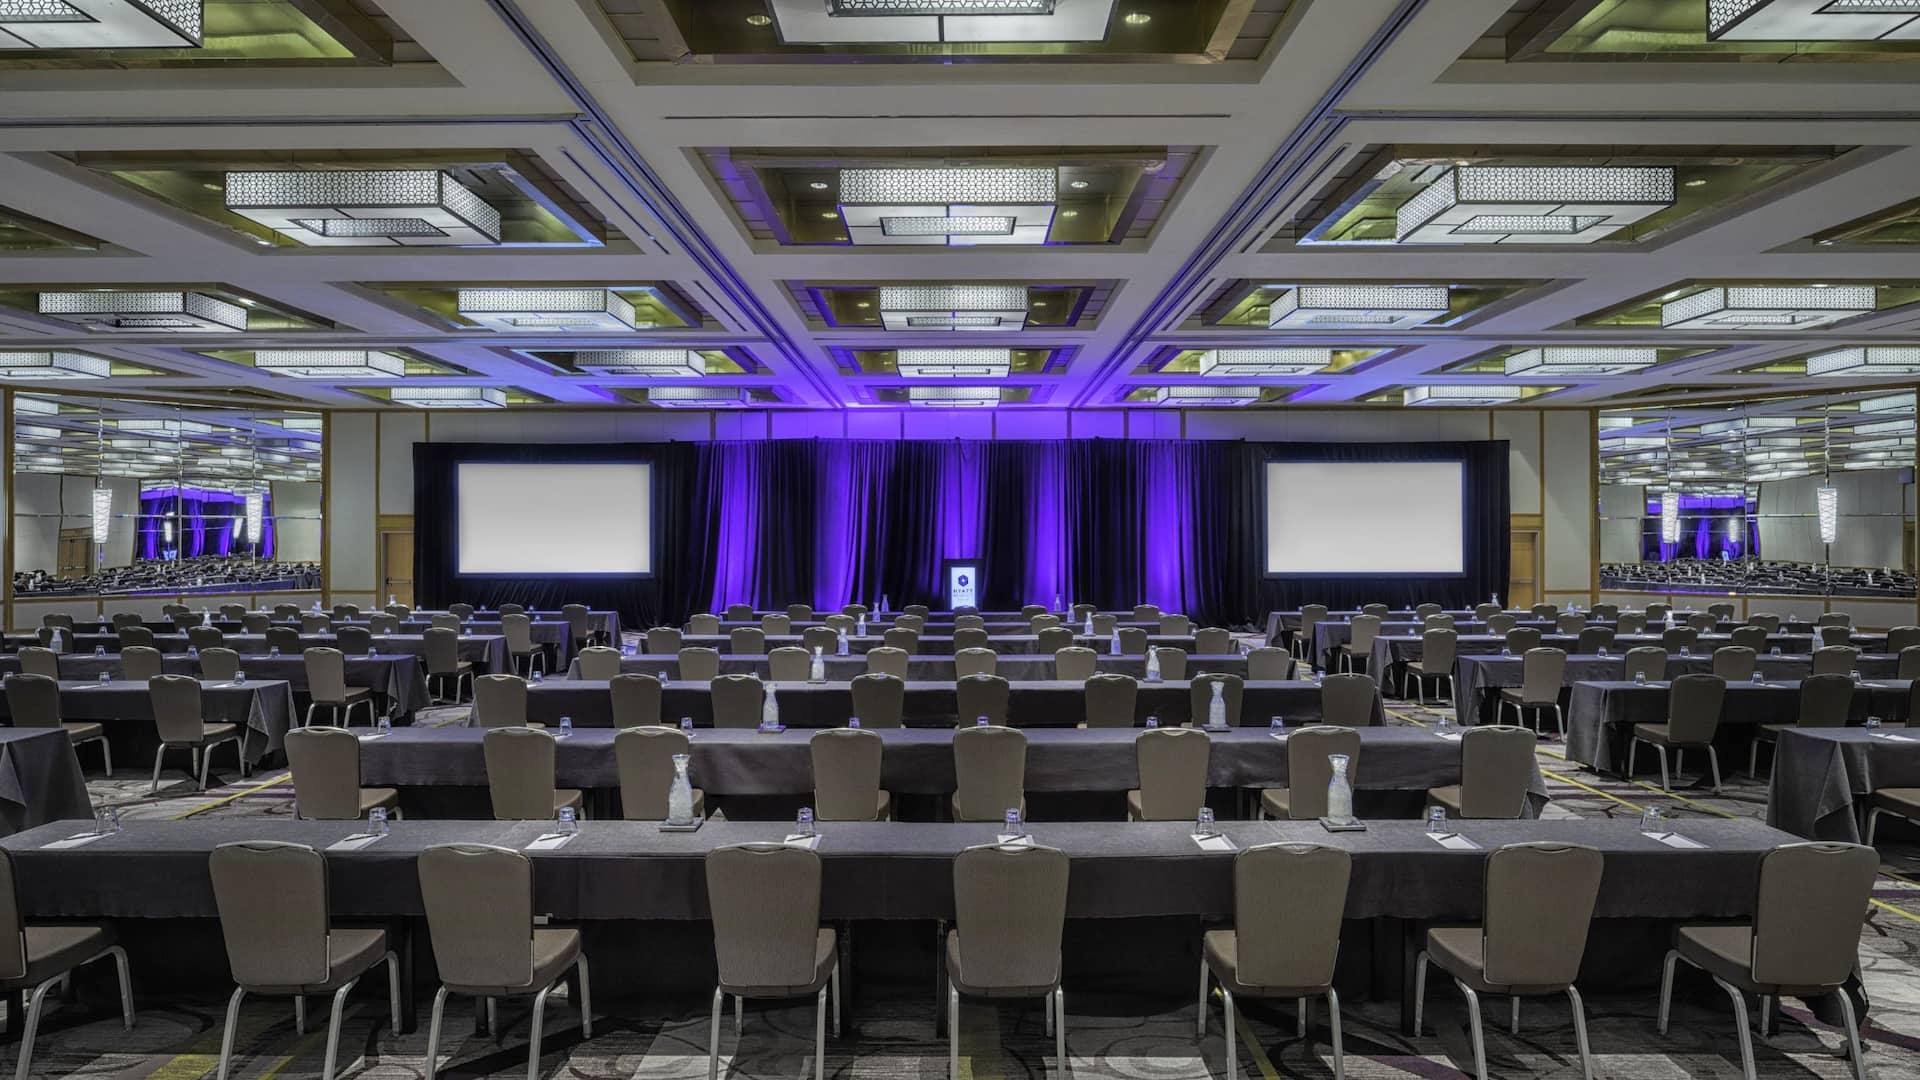 Rows of chairs in large hotel ballroom